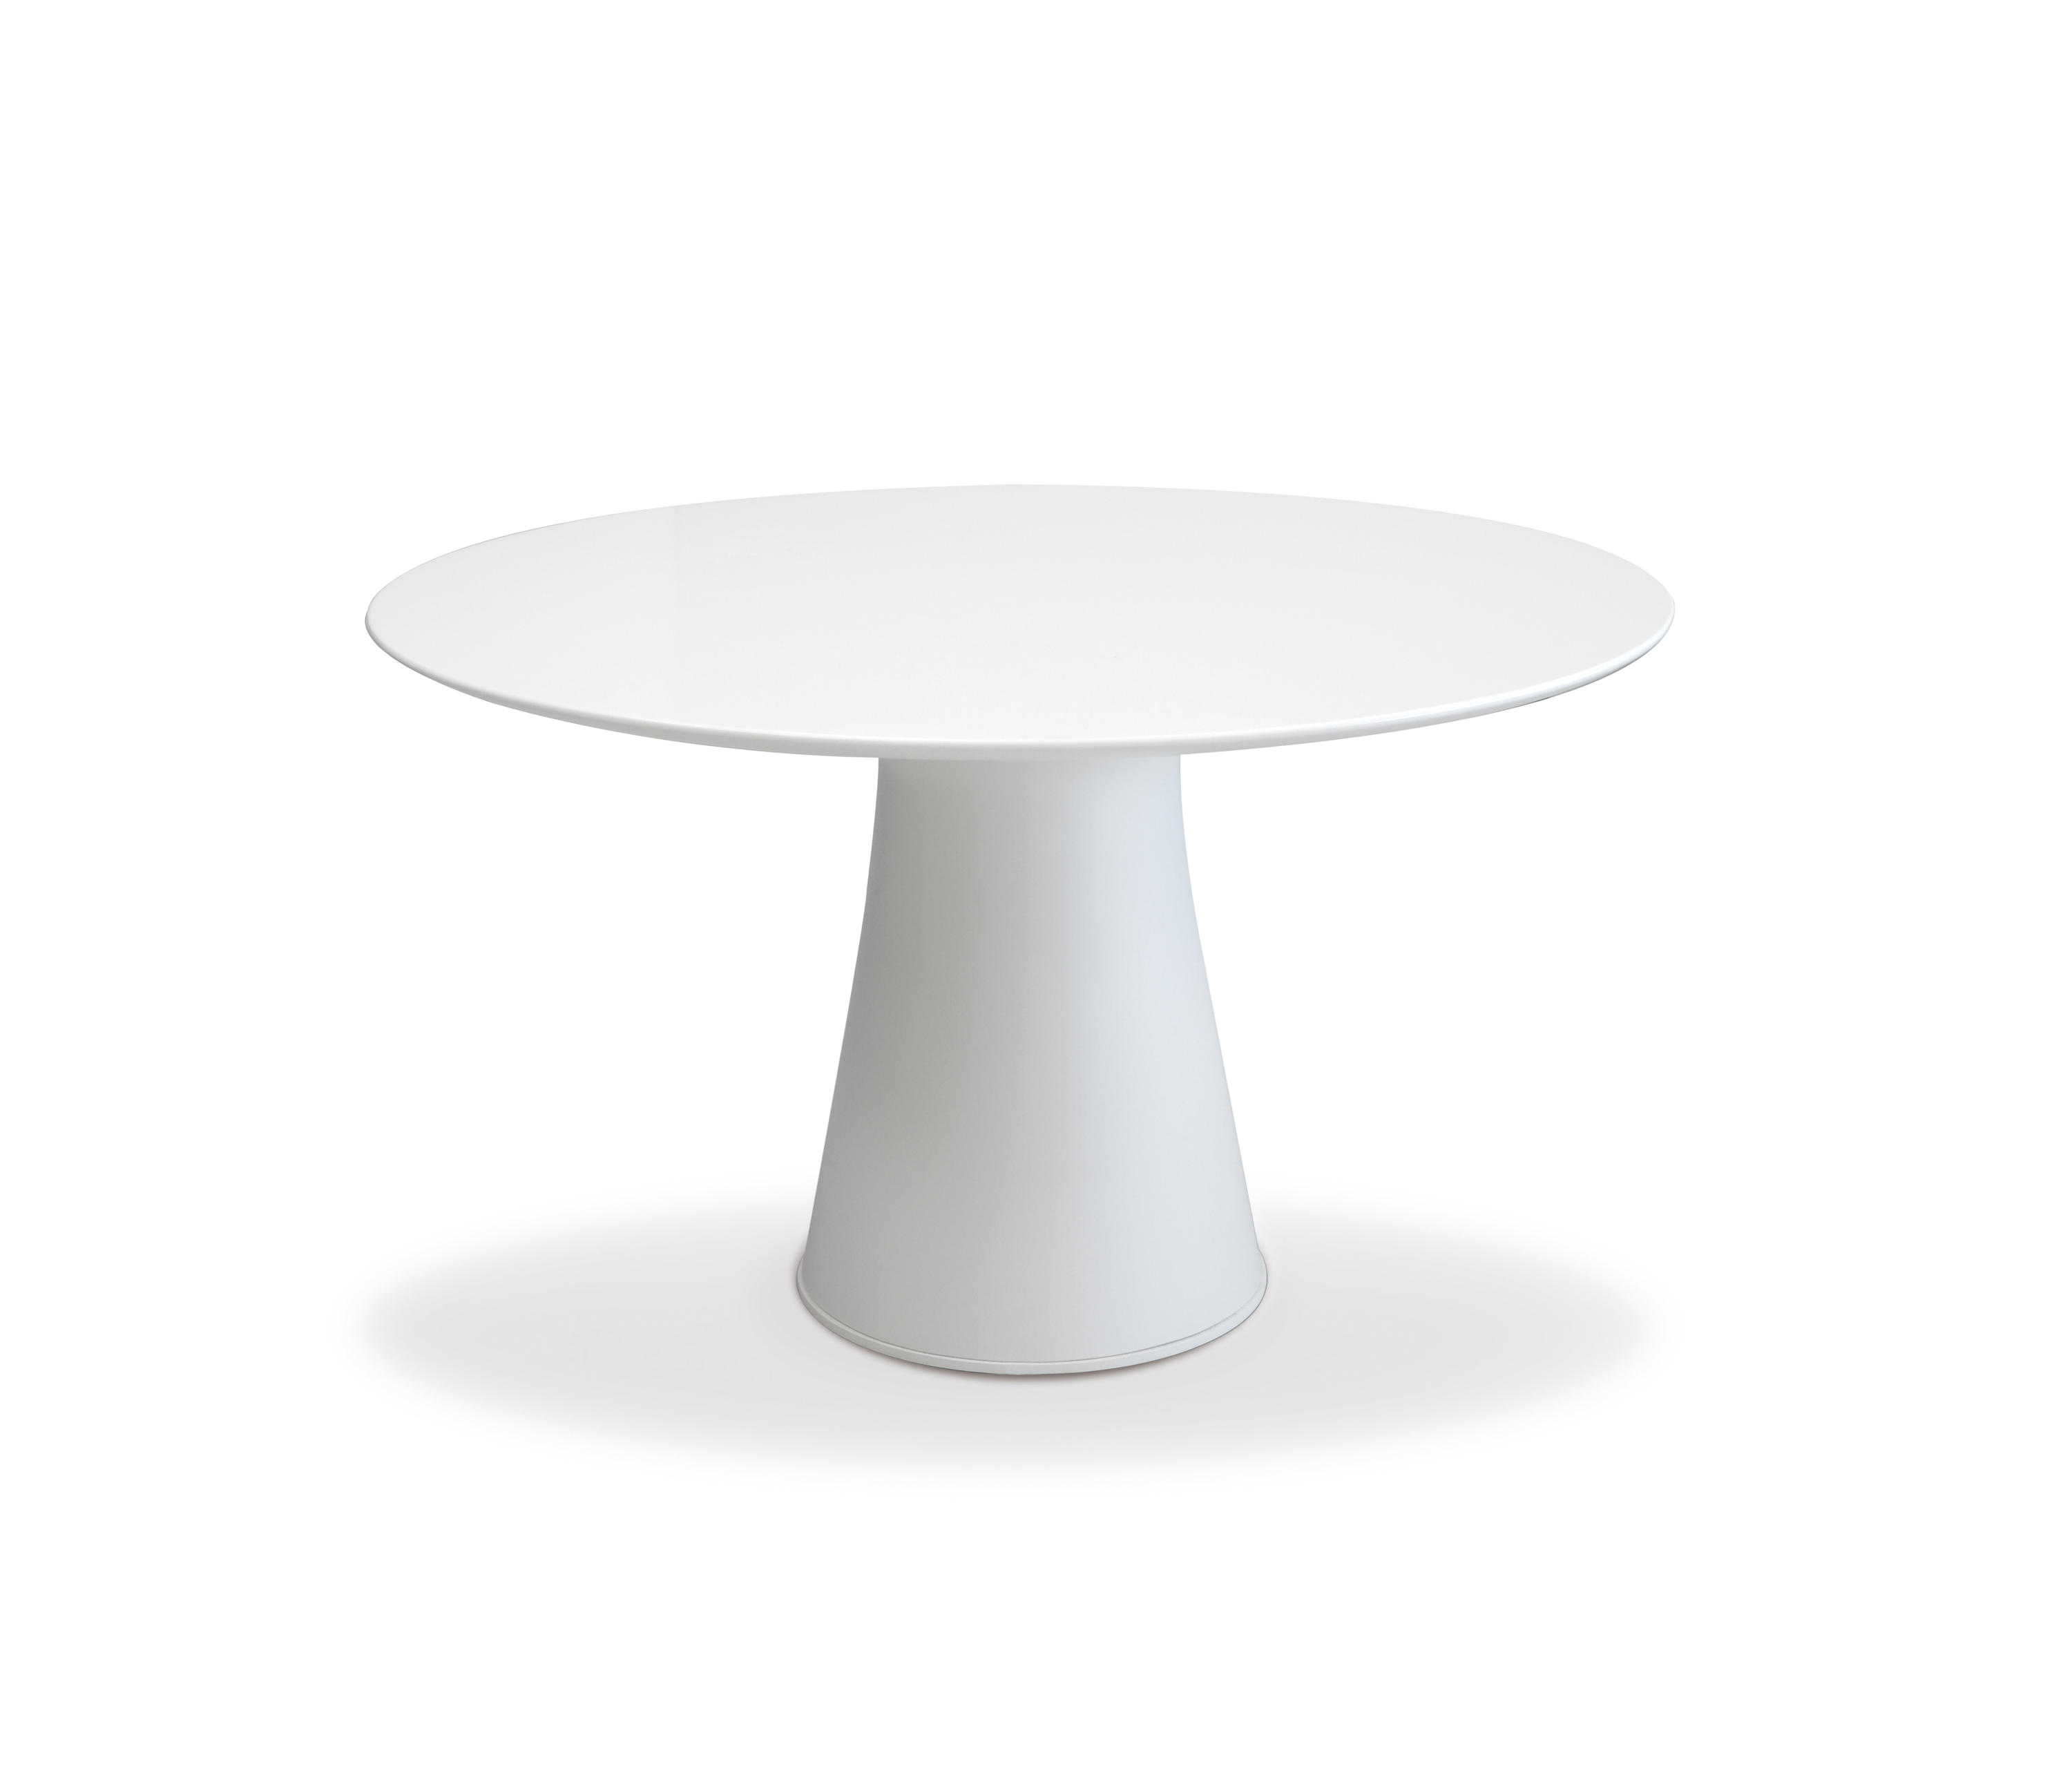 ROLF BENZ 8950 - Restaurant tables from Rolf Benz | Architonic